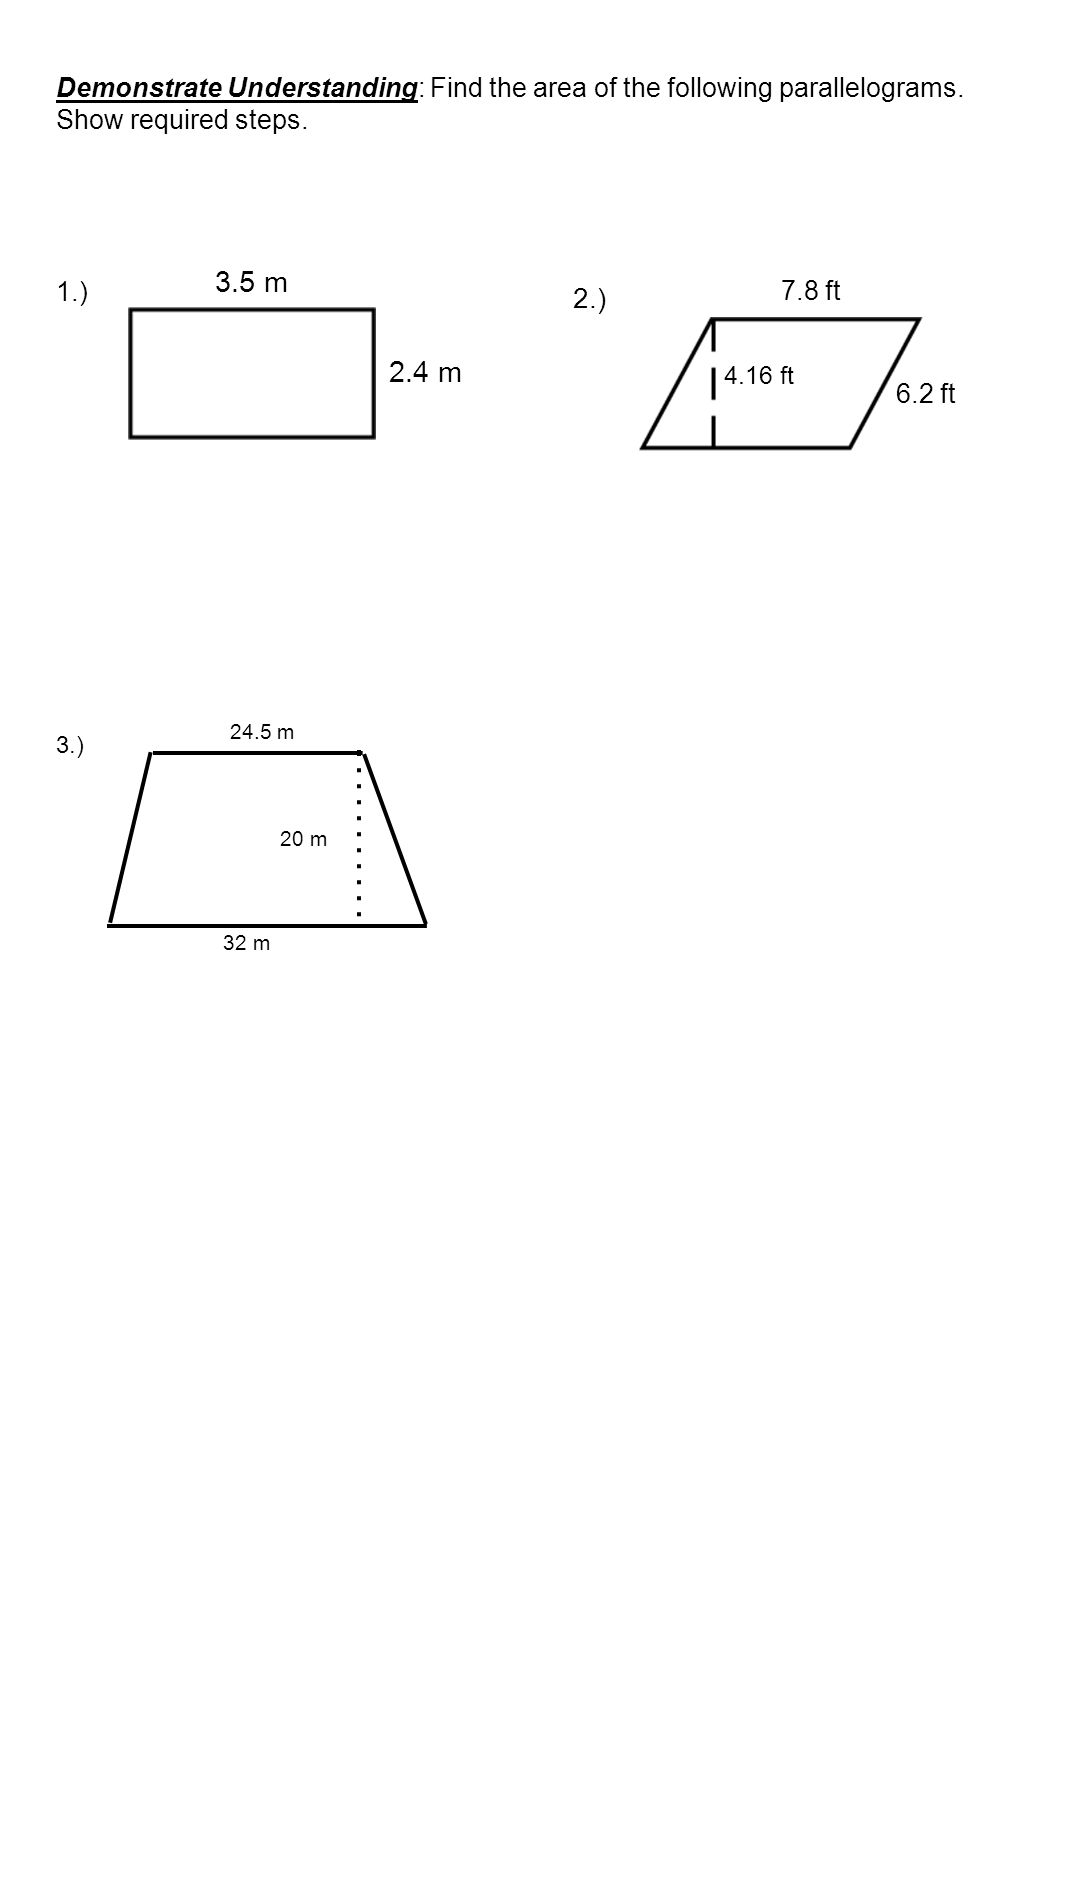 Demonstrate Understanding: Find The Area Of The Following Parallelograms  Show Required Steps